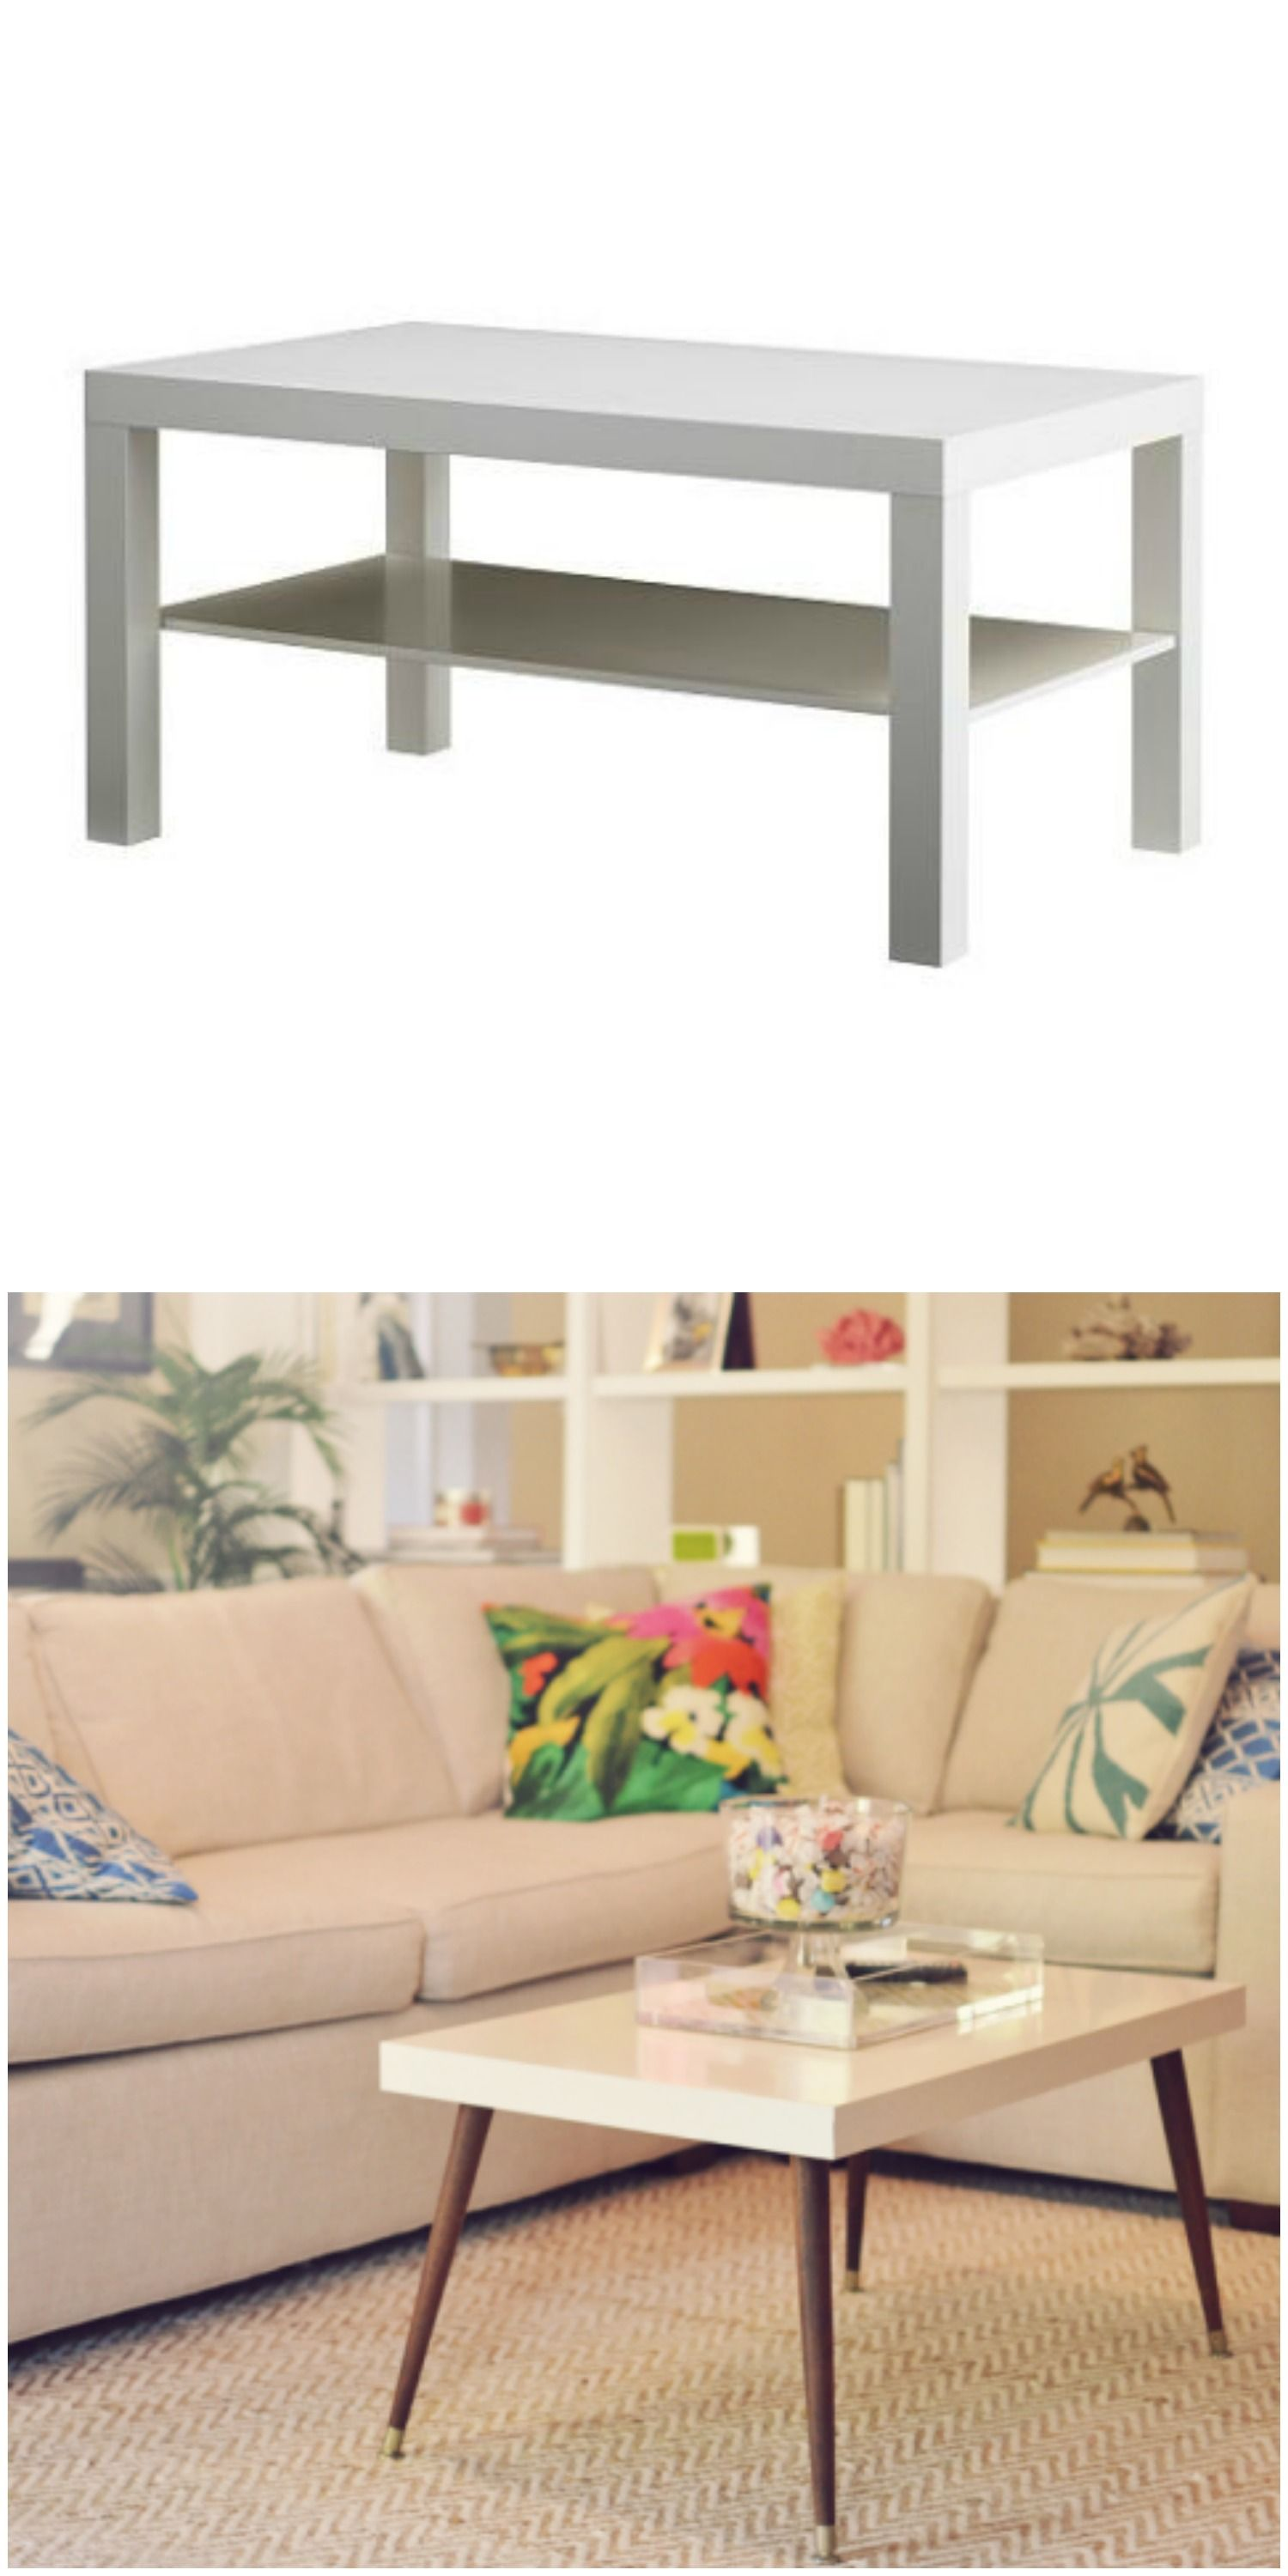 These 35 Ikea Product Hacks Are So Brilliant You Ll Wish You Thought Of Them Ikea Lack Table Ikea Lack Coffee Table Lack Coffee Table [ 3000 x 1500 Pixel ]